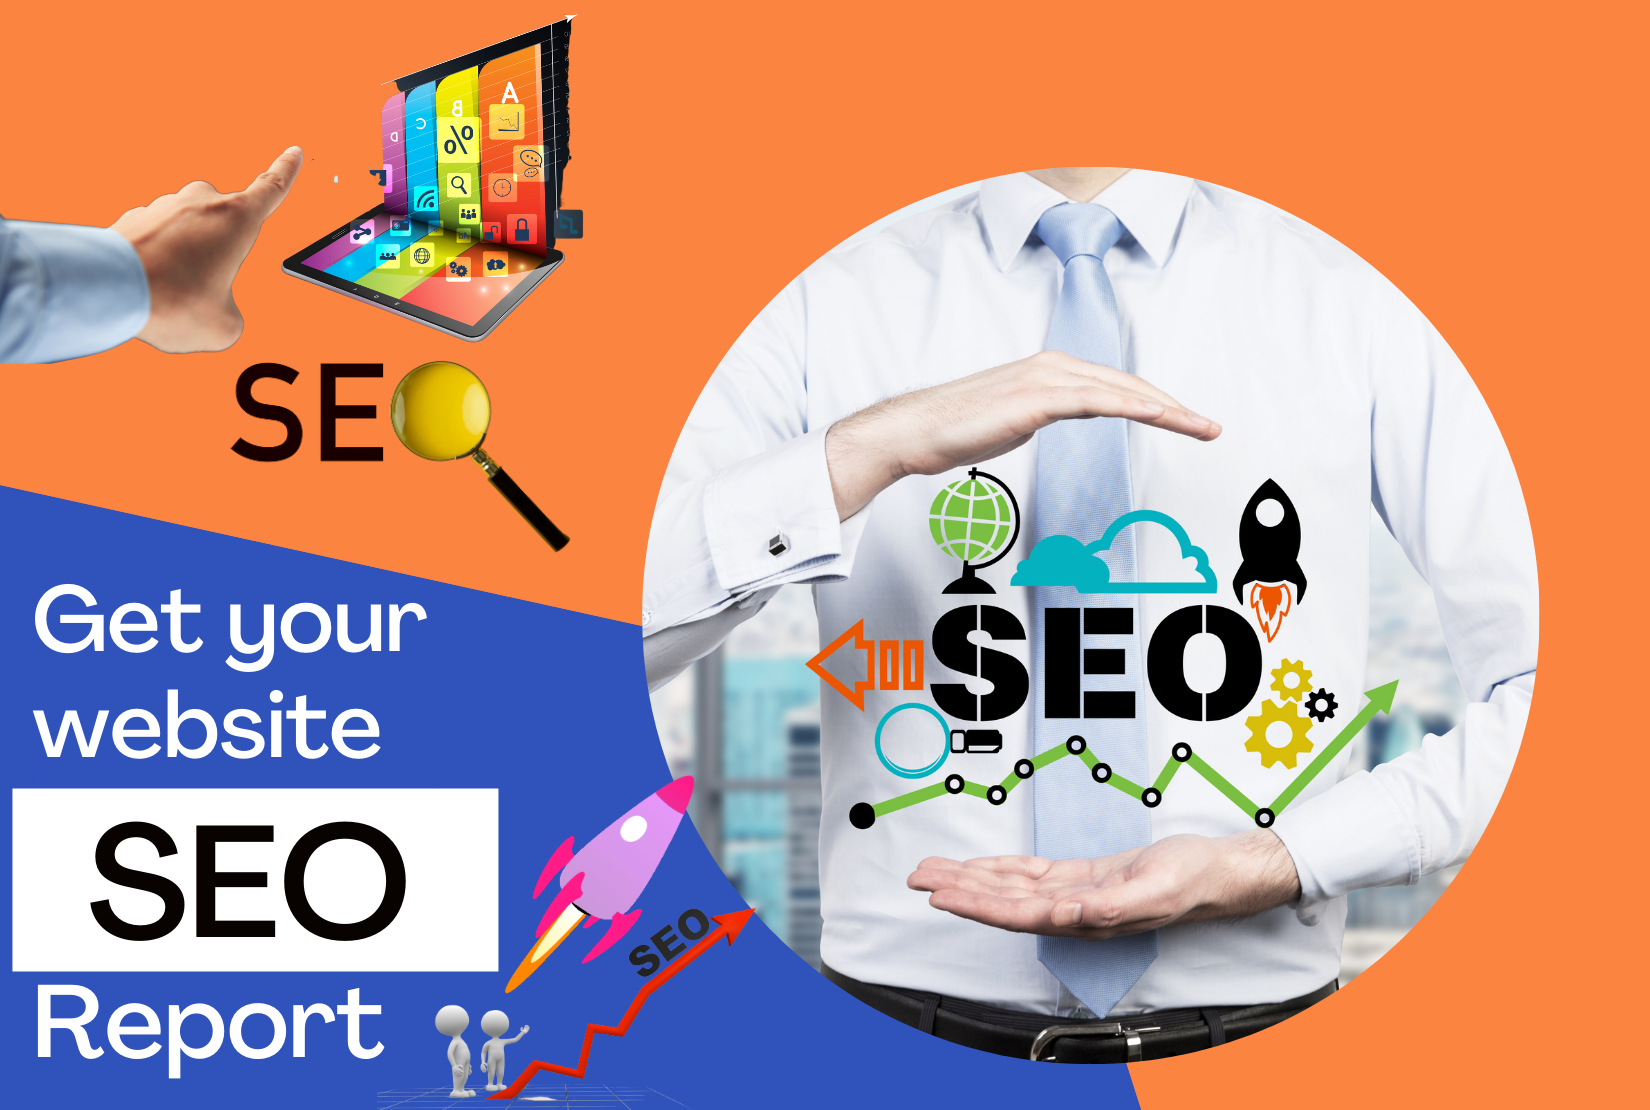 I will provide a detailed SEO audit report for your website